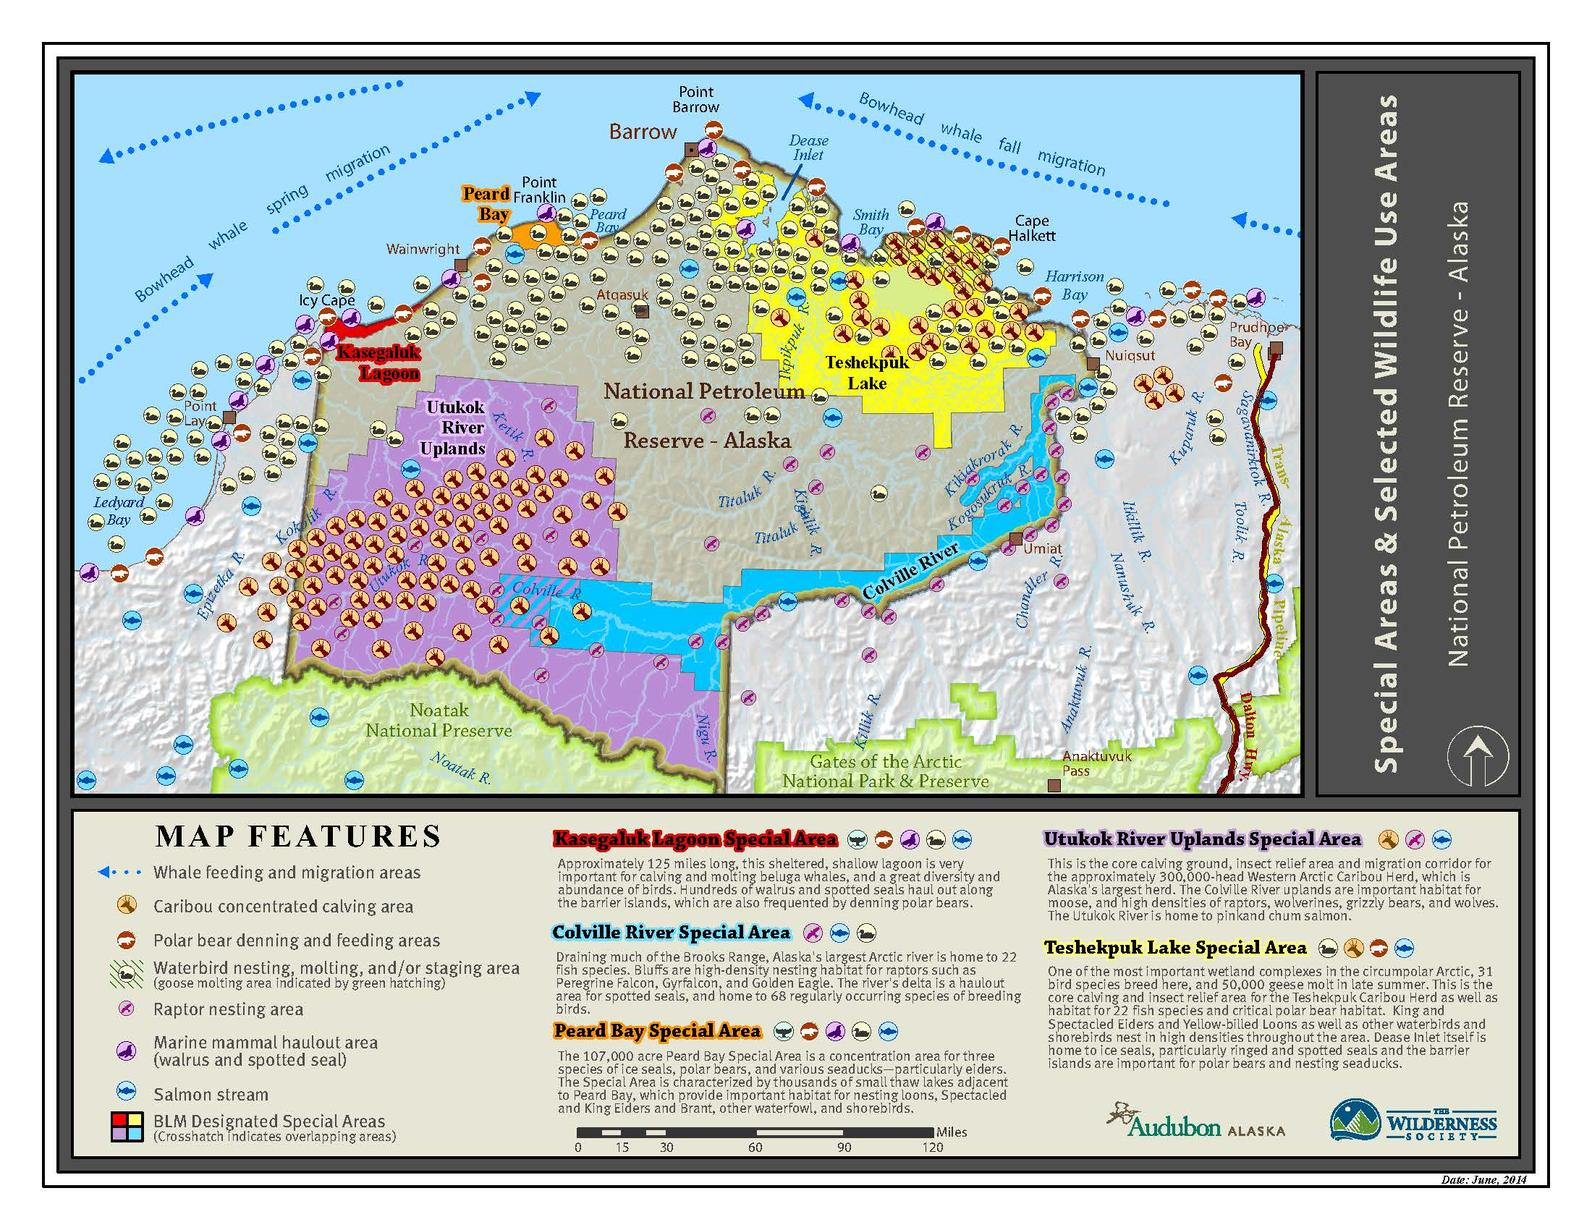 NPRA Positive Wildlife Values Map